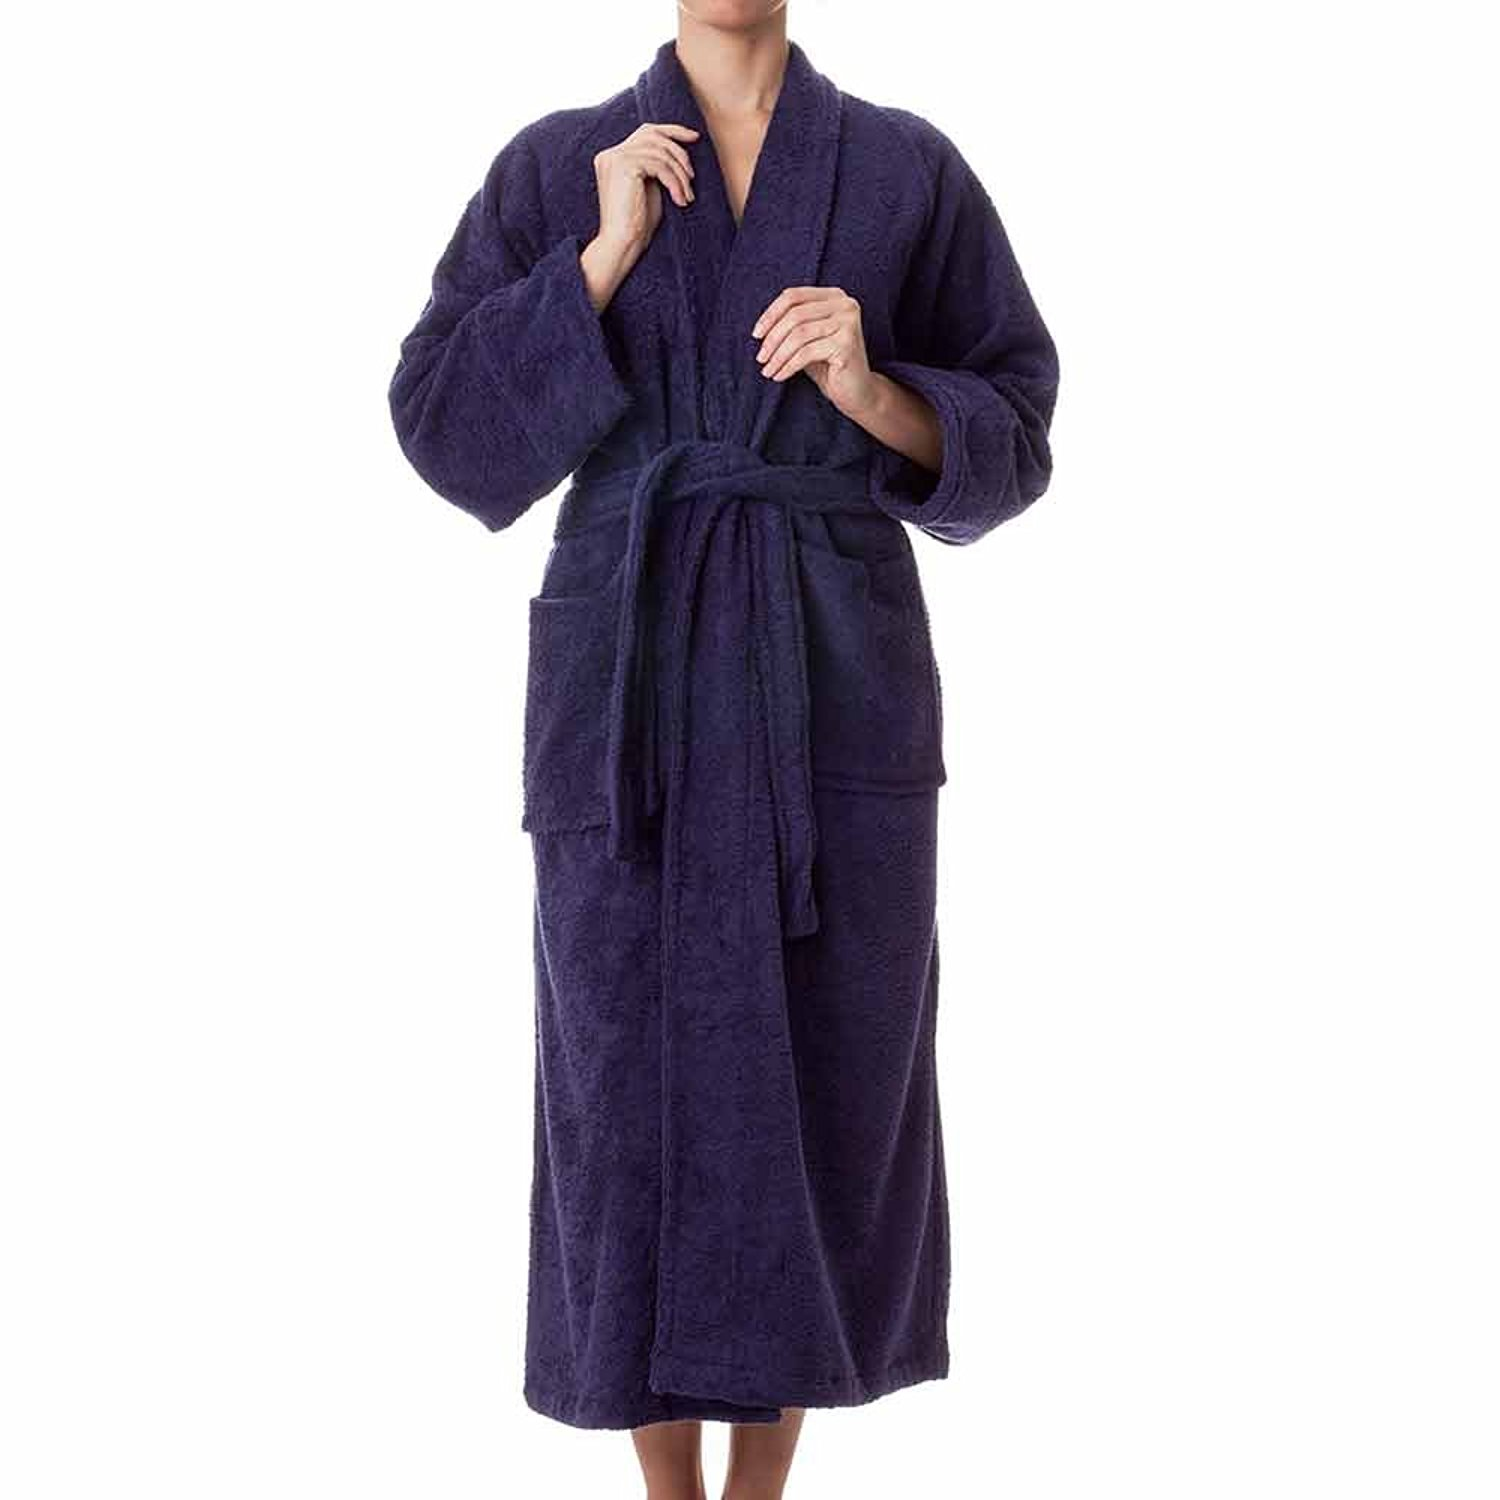 2961ad4490 Unisex Terry Cloth Bathrobe- 100% Long Staple Cotton Hotel Spa Robes -  Classic